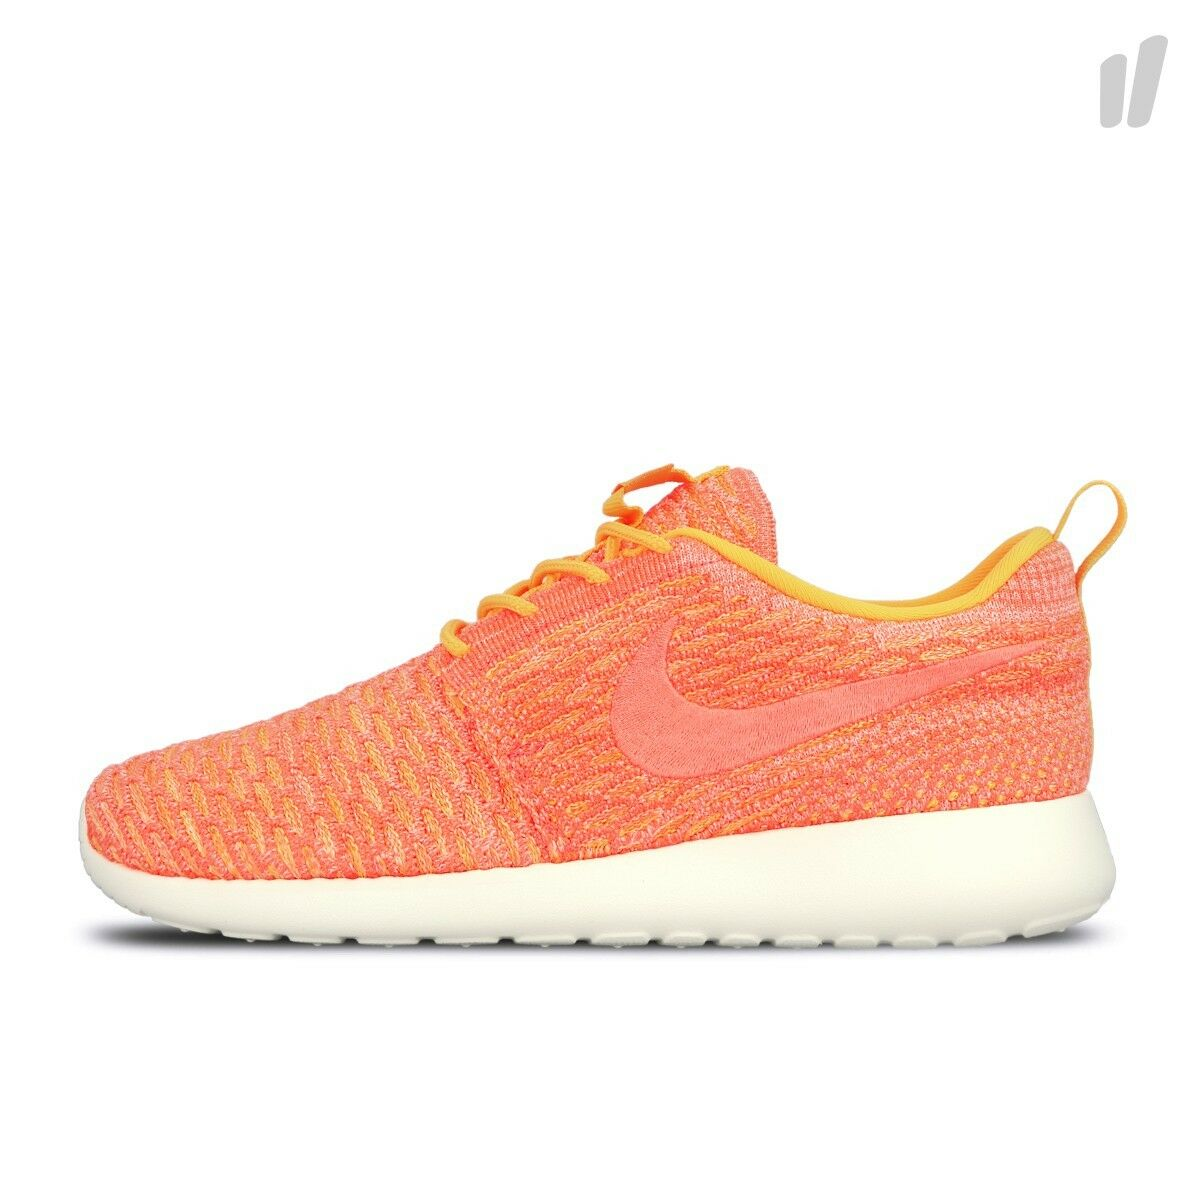 NIKE WOMENS ROSHE ONE FLYKNIT RUNNING SHOES 704927 802 RETAIL PRICE120